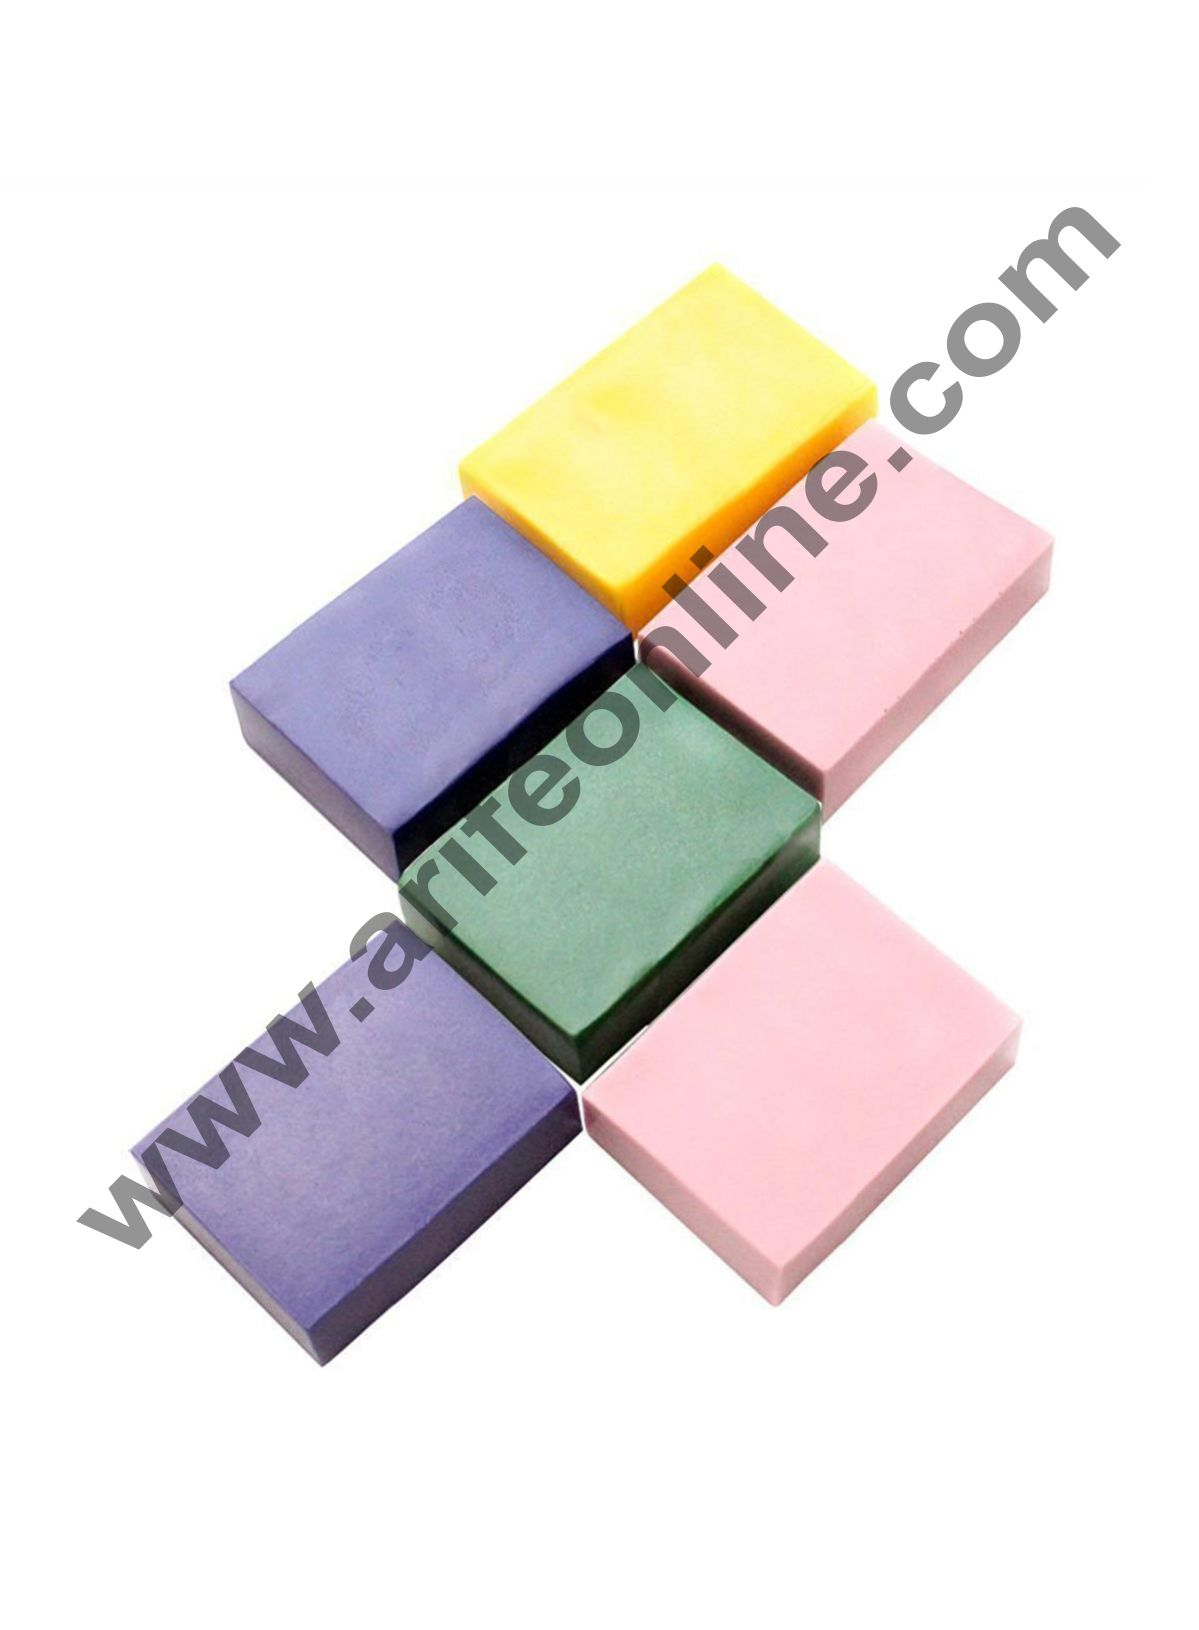 Cake Decor 1PC 6 Handmade Rectangle Silicone Soap Mold Chocolate Cookies Mould Cake Decorating Fondant Molds Pink Color